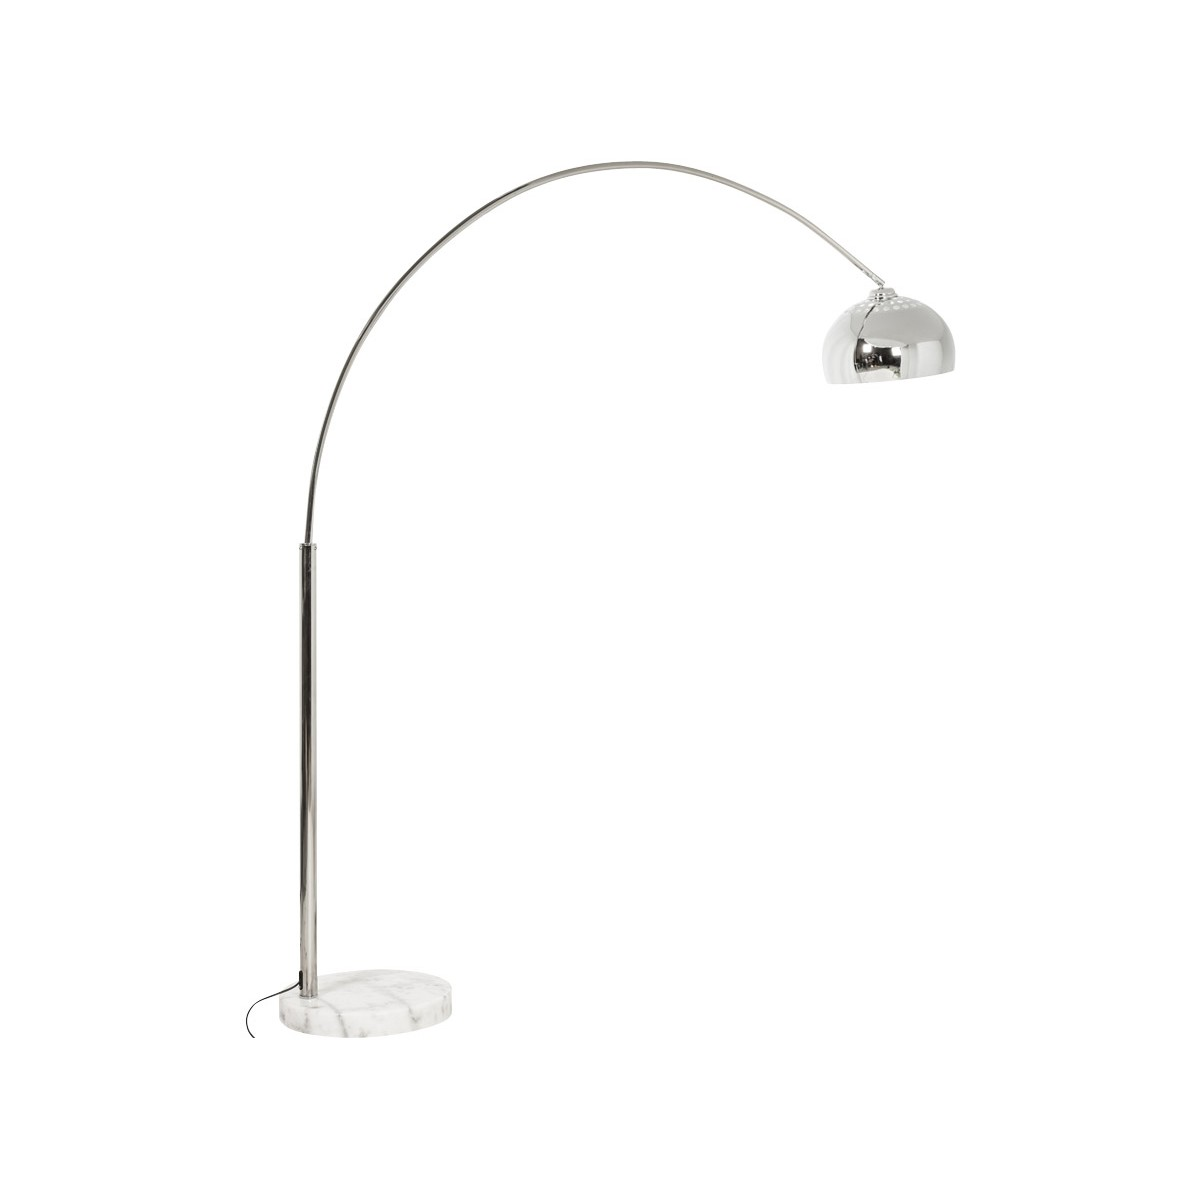 Design Küchenlampe Moerol Xl Chrome Design Floor Chrome Steel Lamp (great And Chrome)